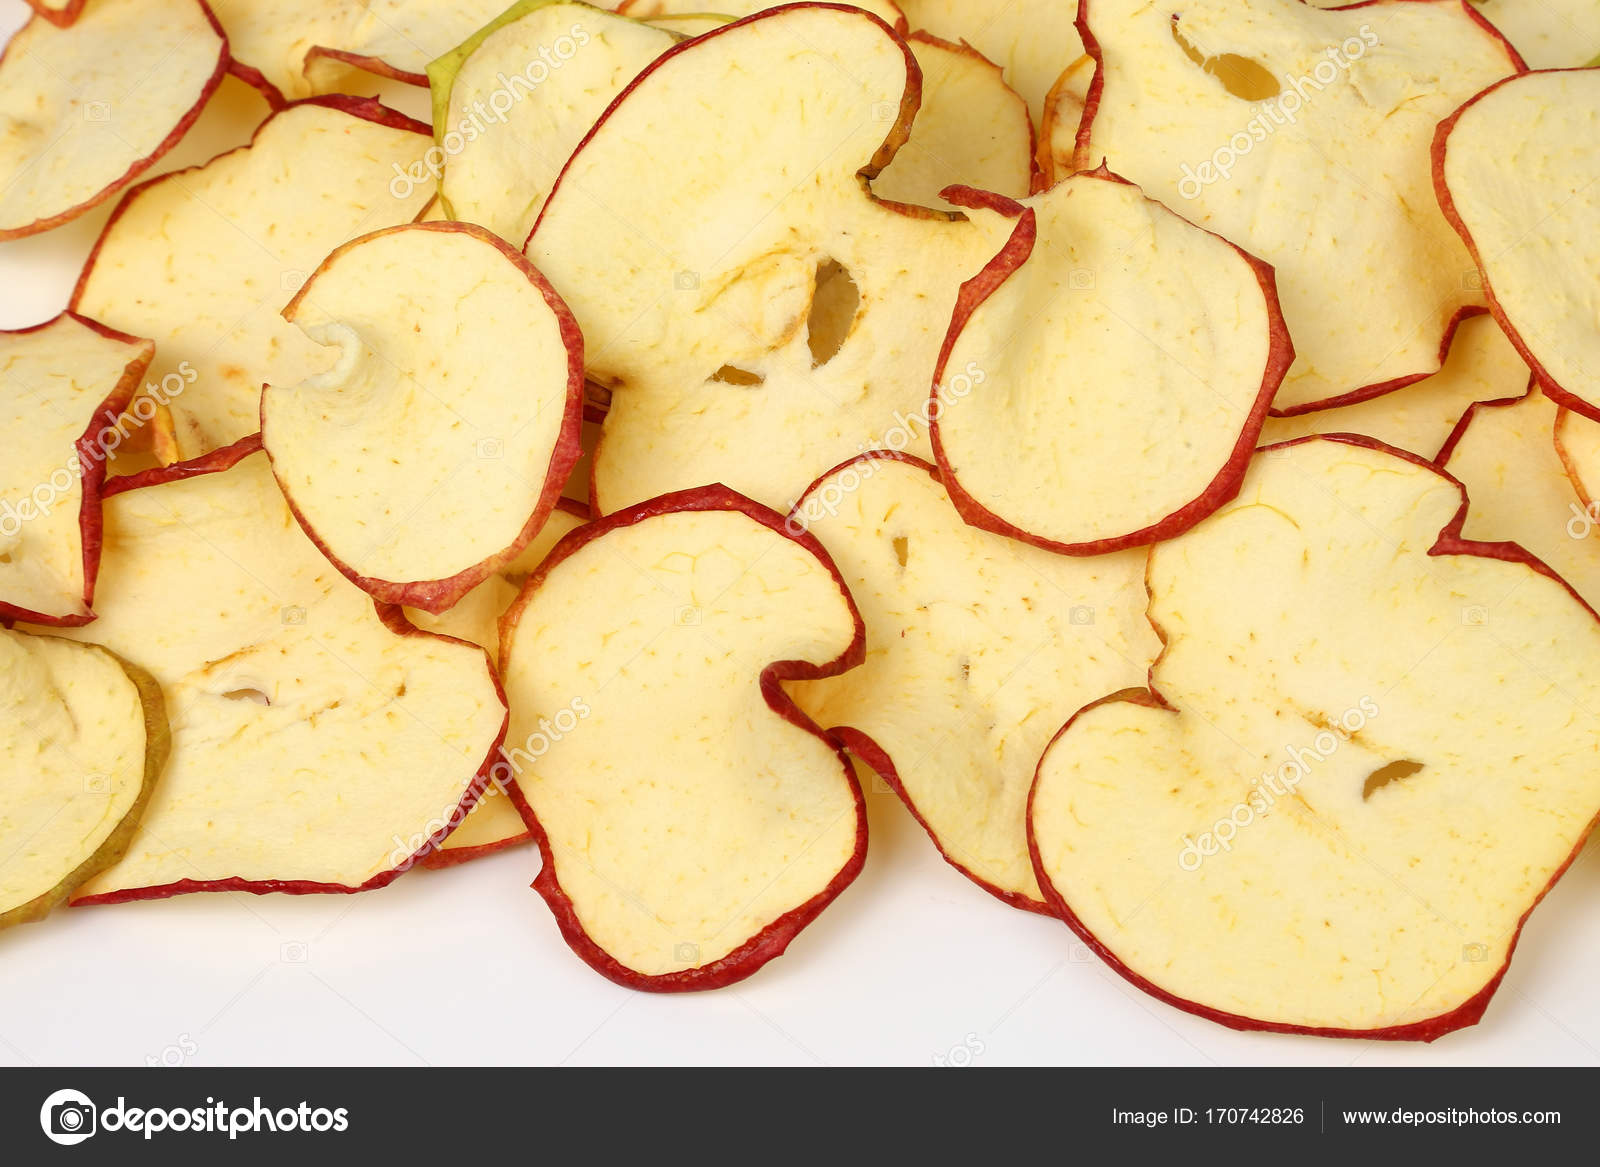 Gedroogde Appels Dried Apple Slices Closeup On White Background Stock